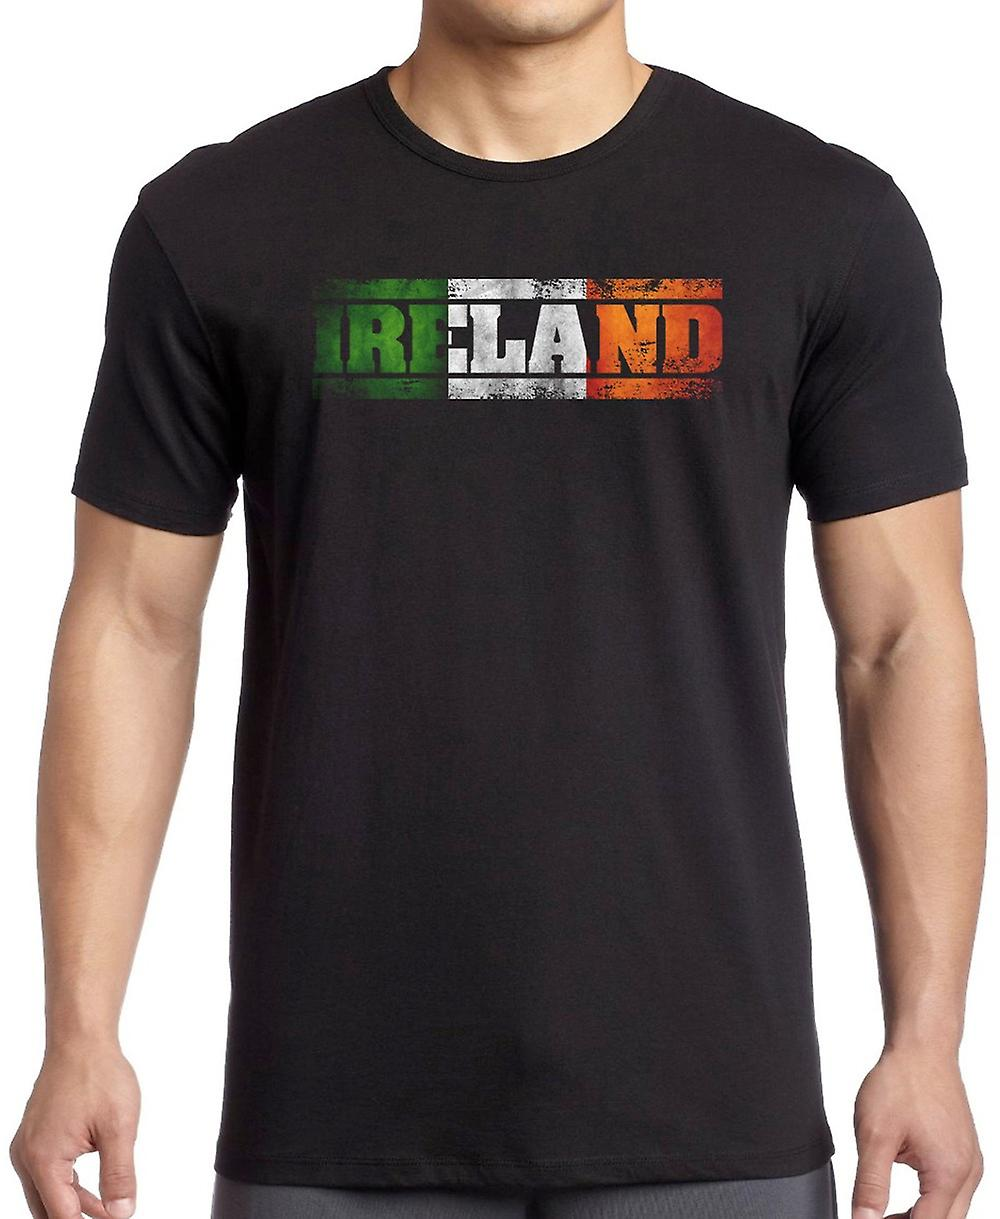 Irland-Irish - Worte T Shirt